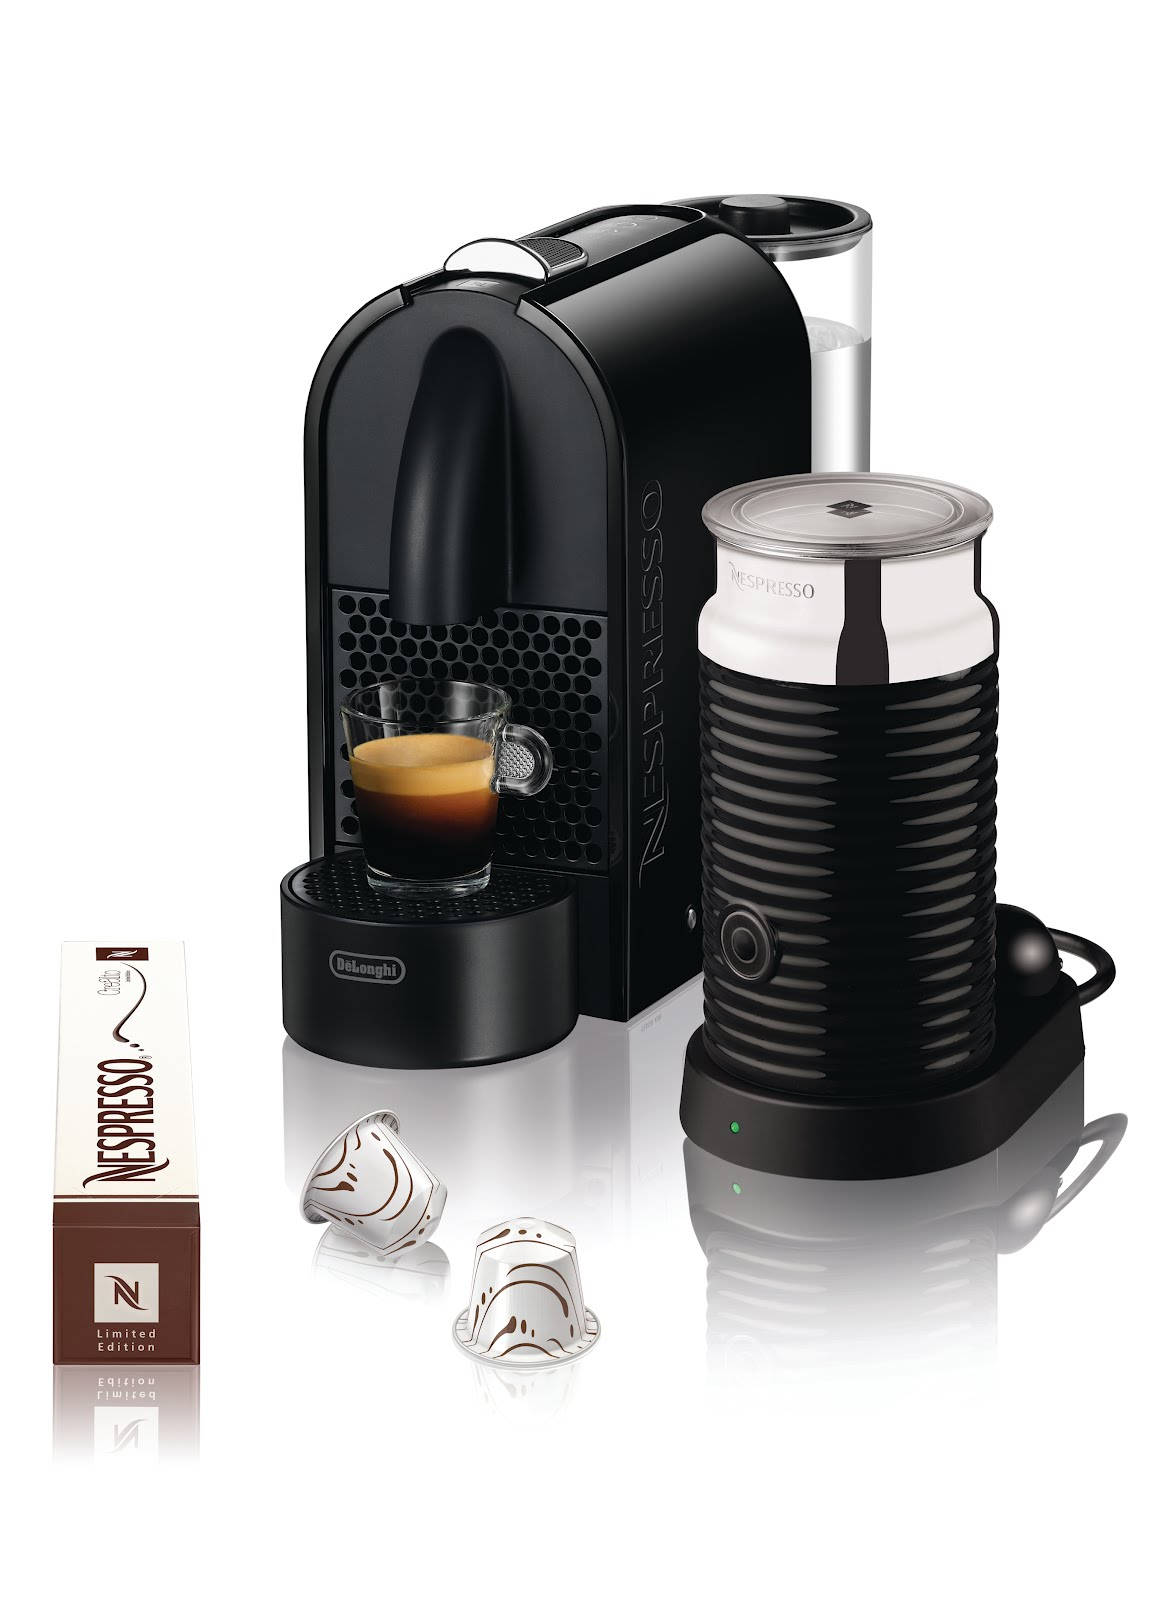 Electronic Real Coffee Machine i eat therefore am giveaway nespresso u coffee machine and so congratulations jay you are the winner of a new crealto coffeepack